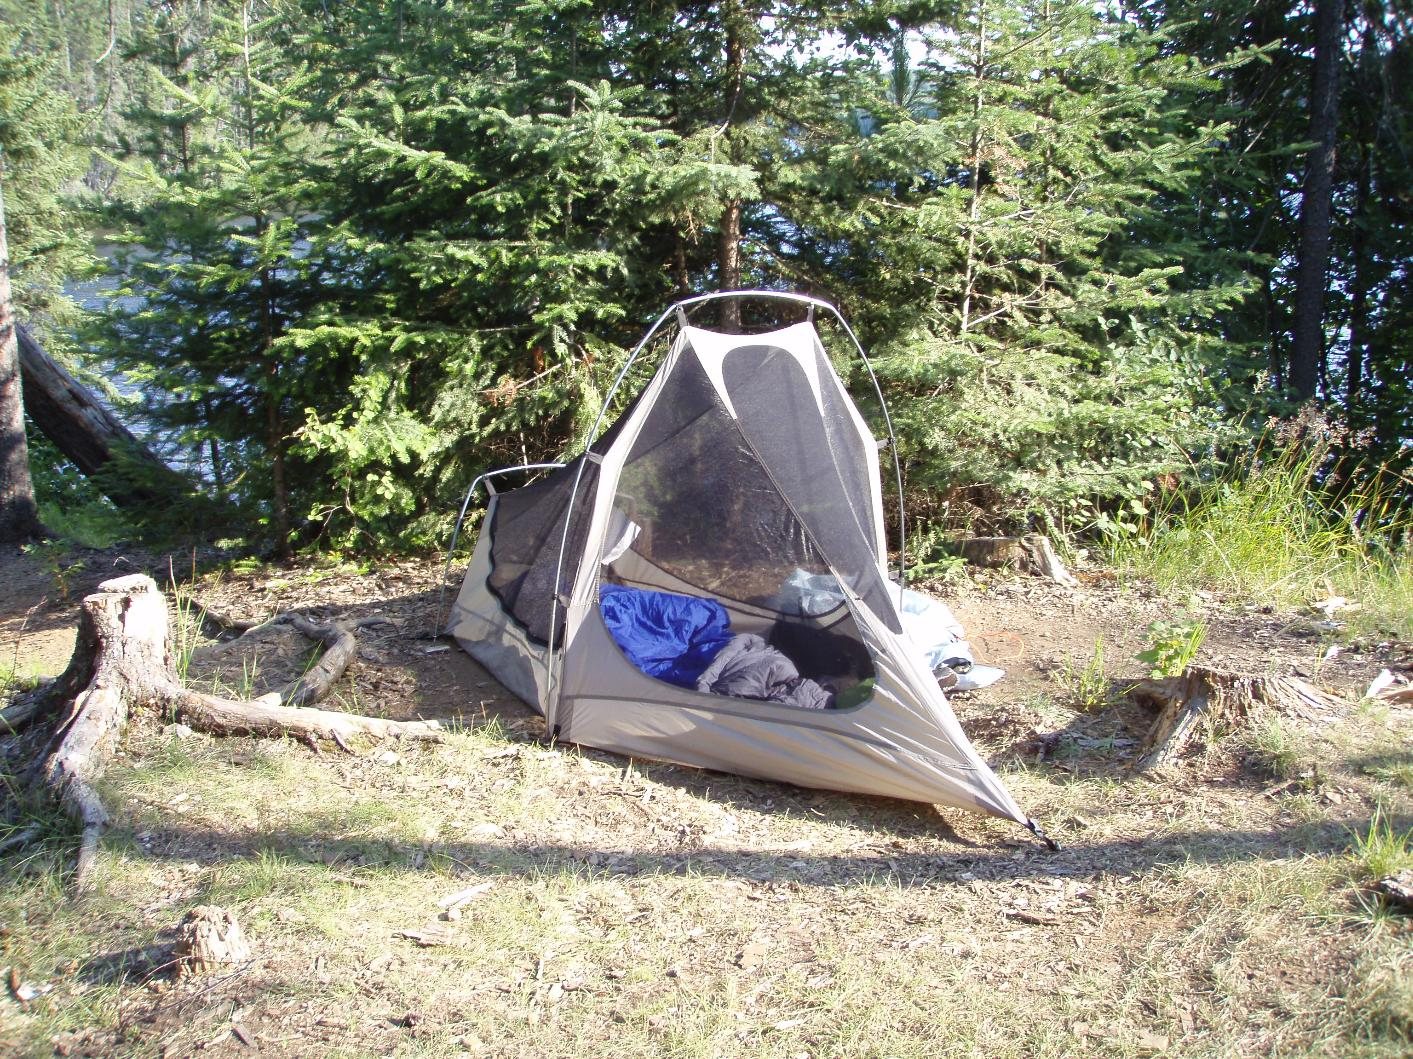 & BWCA True solo tent Boundary Waters Private Group Forum: Solo Tripping